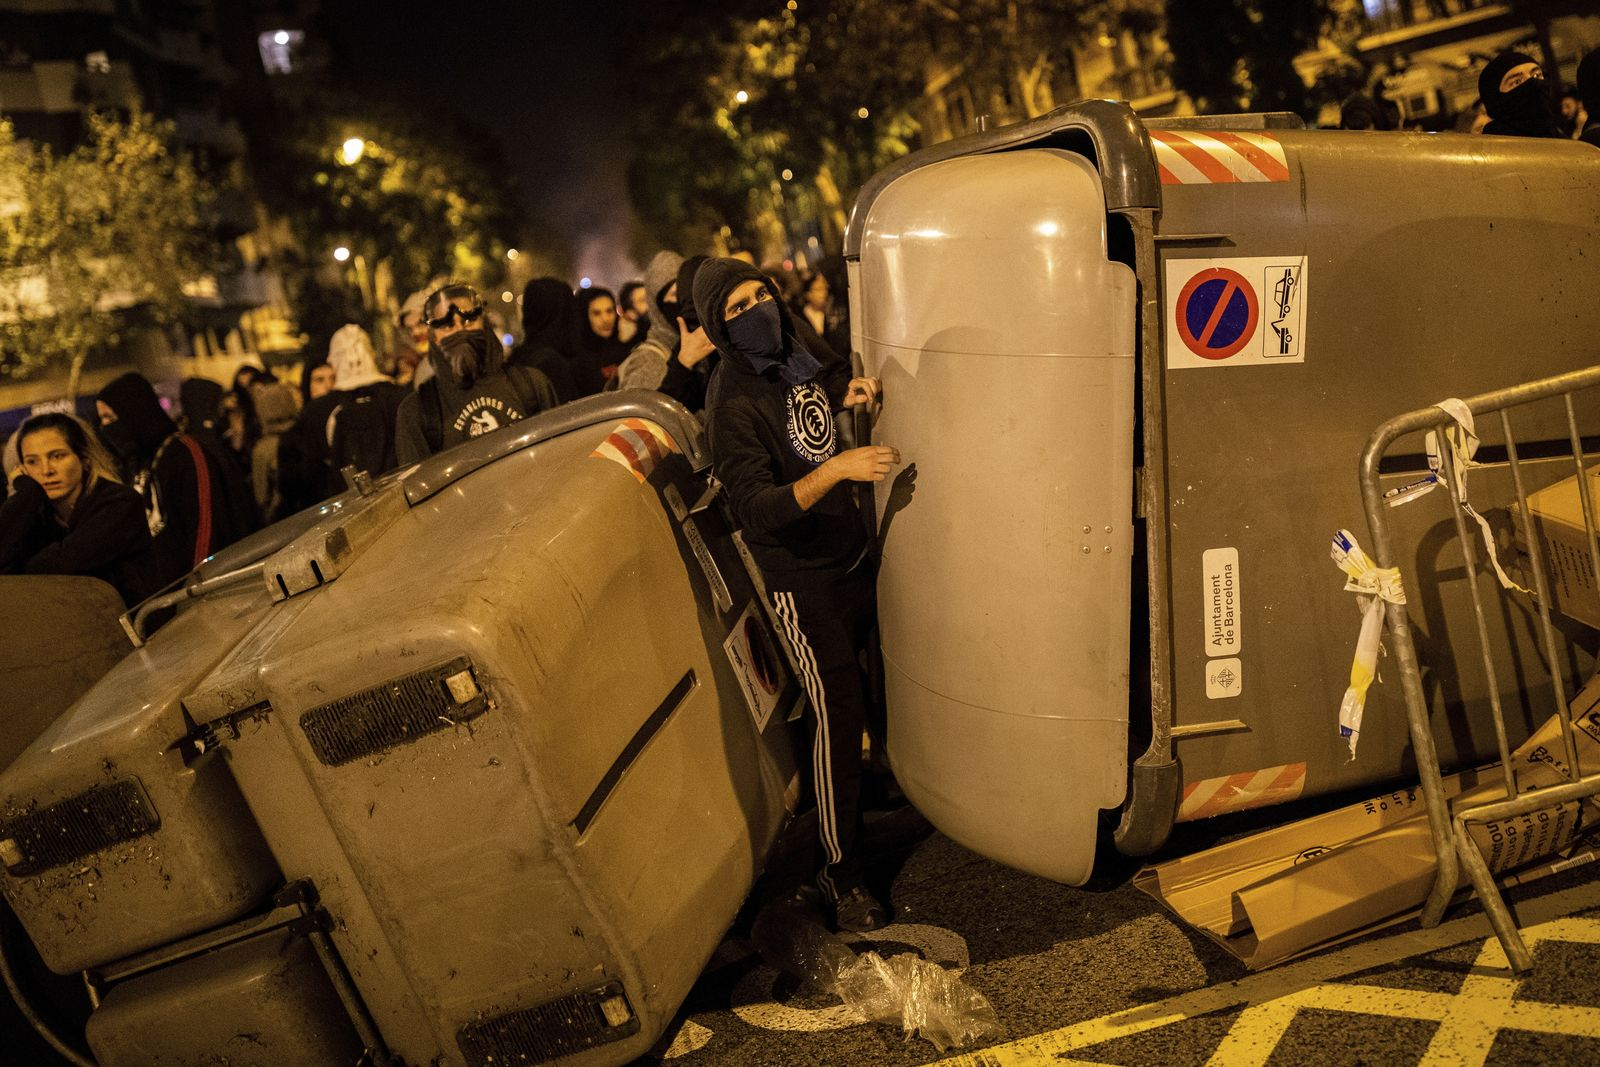 Demonstrators take shelter behind a barricade during clashes with police in Barcelona, Spain, Wednesday, Oct. 16, 2019. (AP Photo/Bernat Armangue)